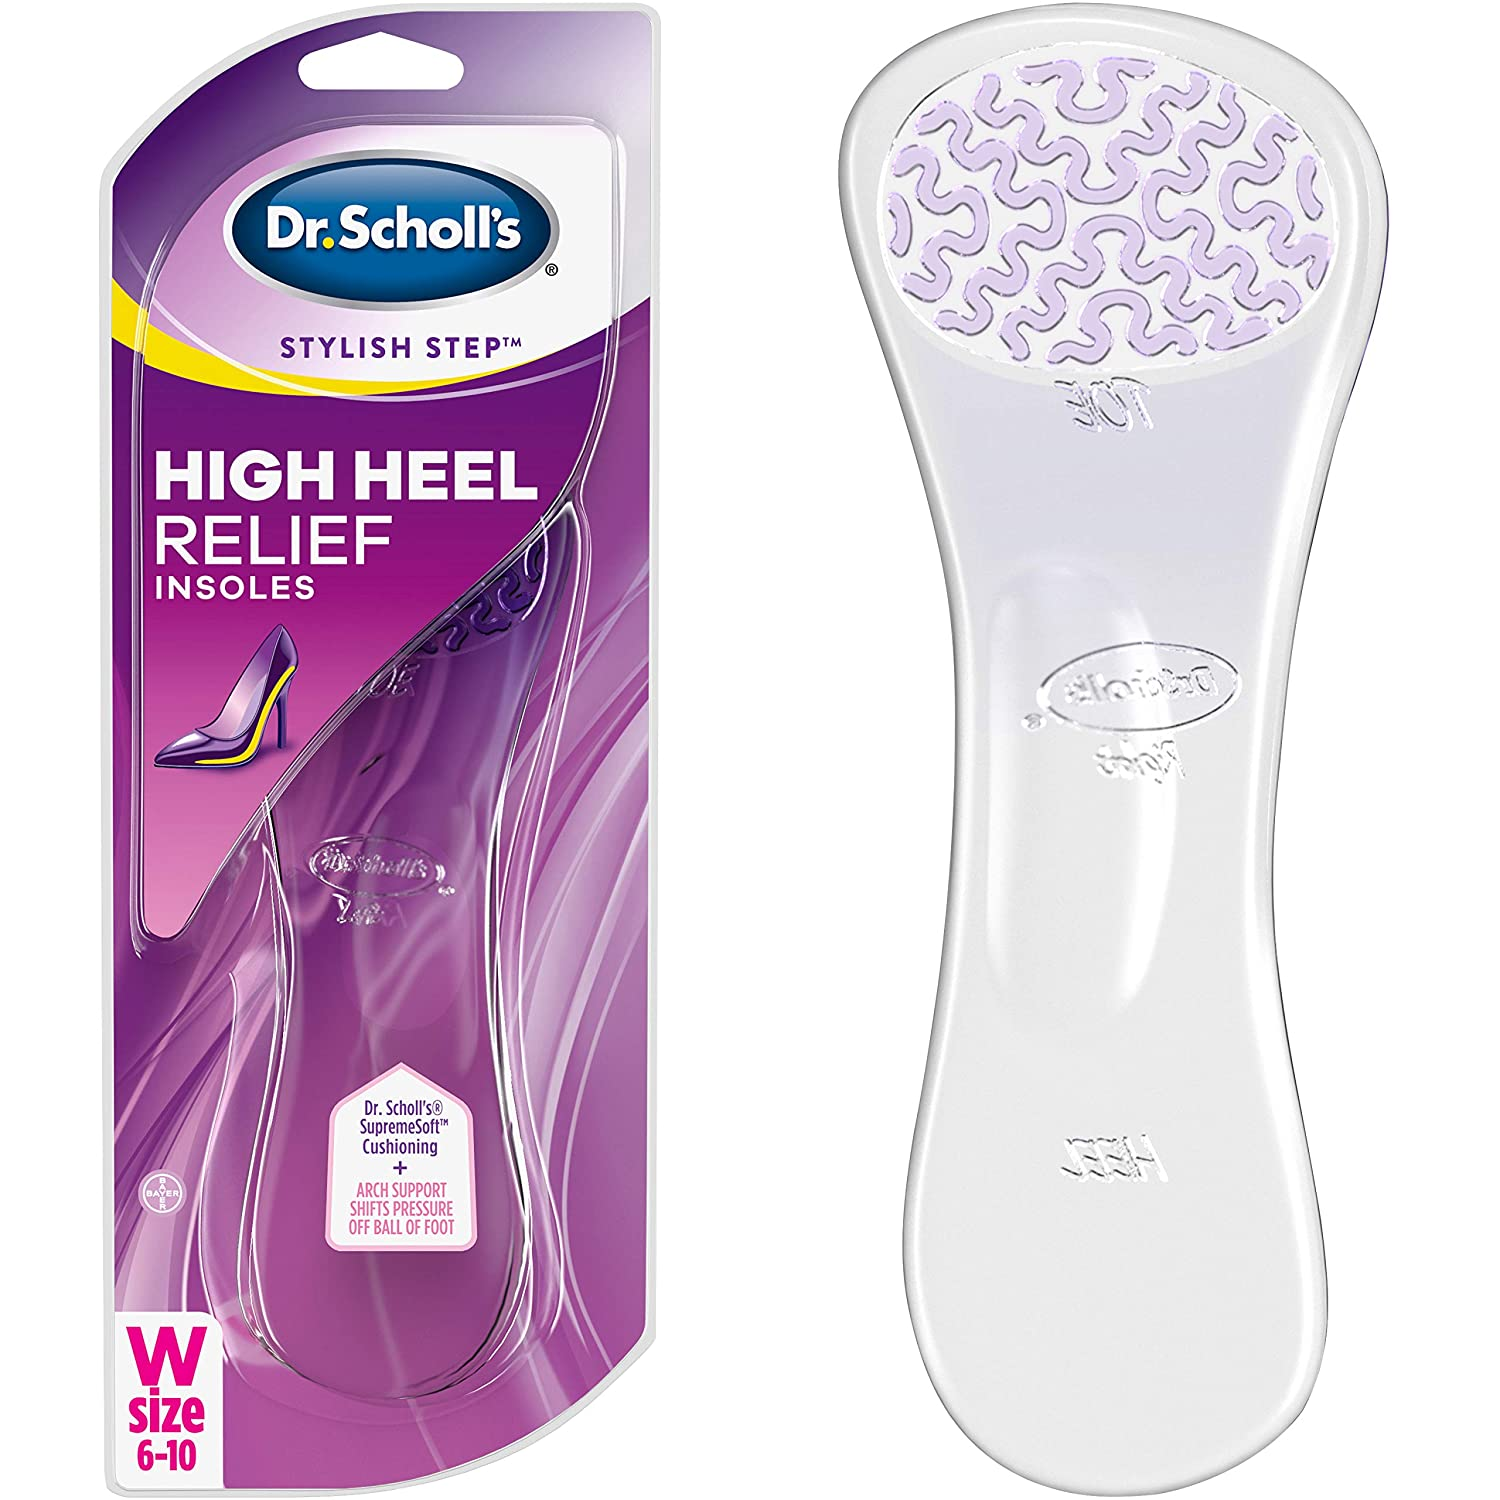 Dr. Scholl's HIGH HEEL RELIEF Insoles // Clinically Proven to Prevent Pain in High Heels with Ultra-Soft Gel Arch that Shifts Pressure off the Ball of Foot for All-Day Comfort (for Women's 6-10)